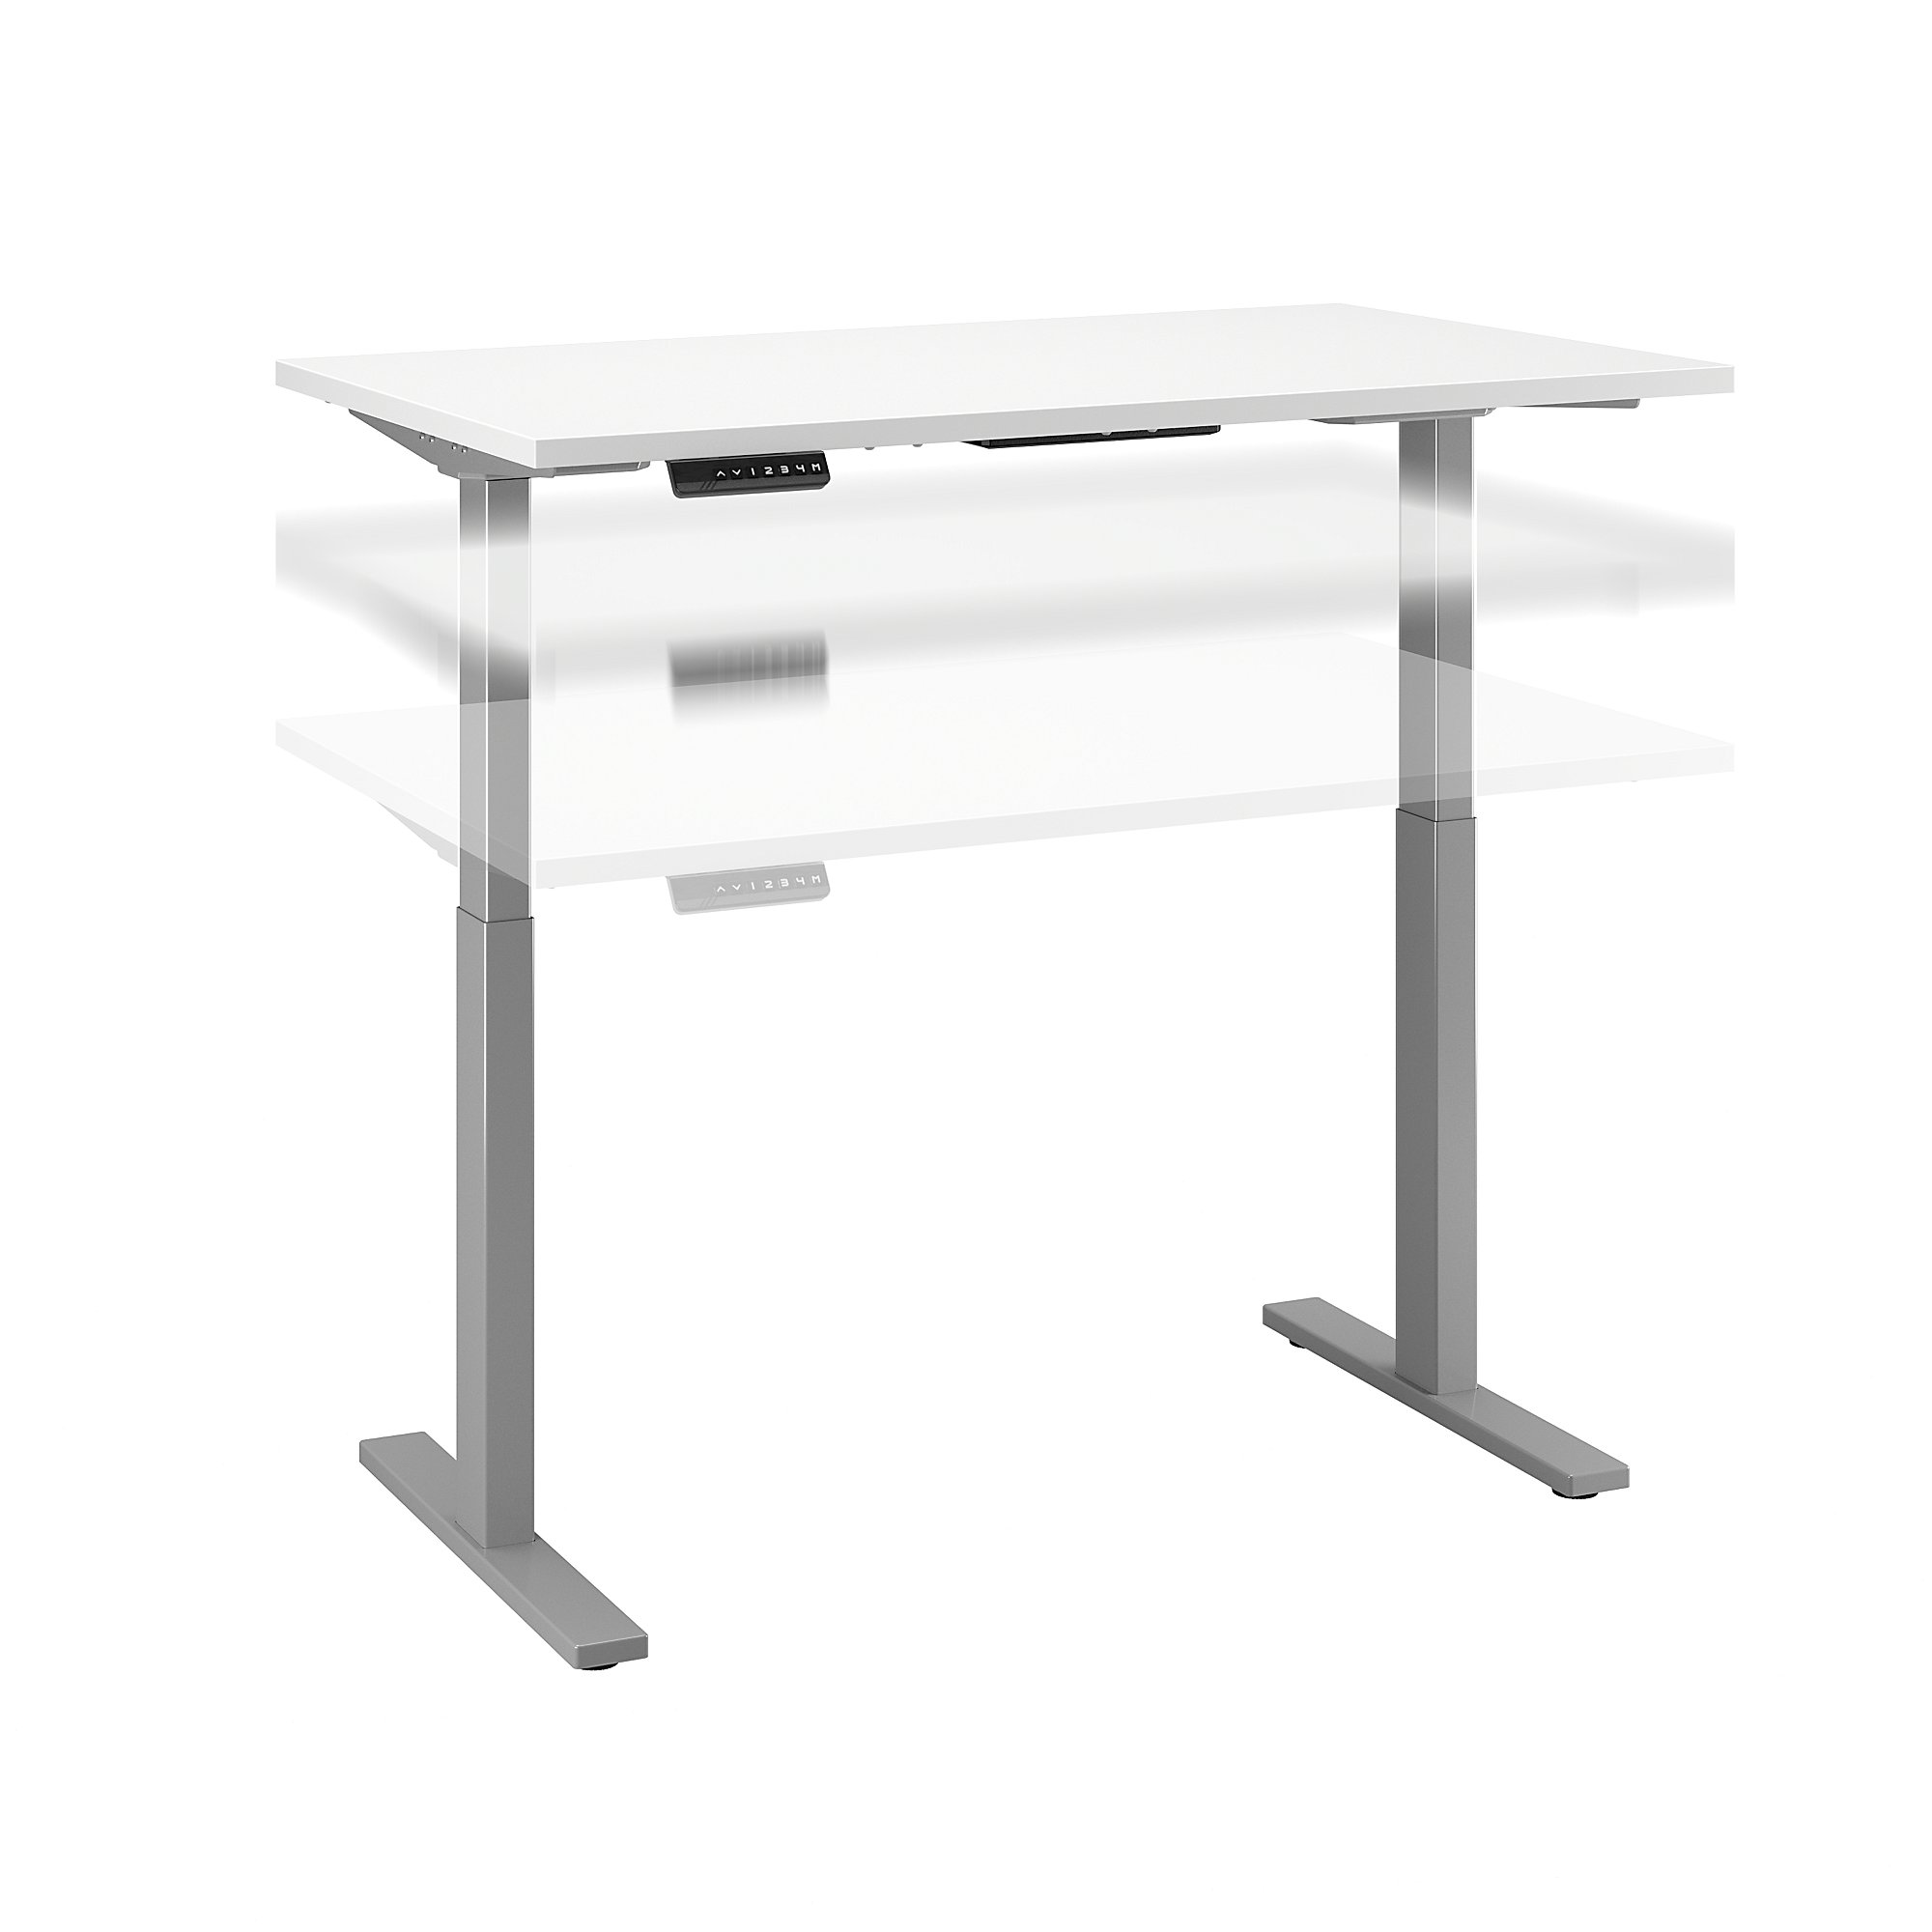 Sit stand desk converter dual monitor height